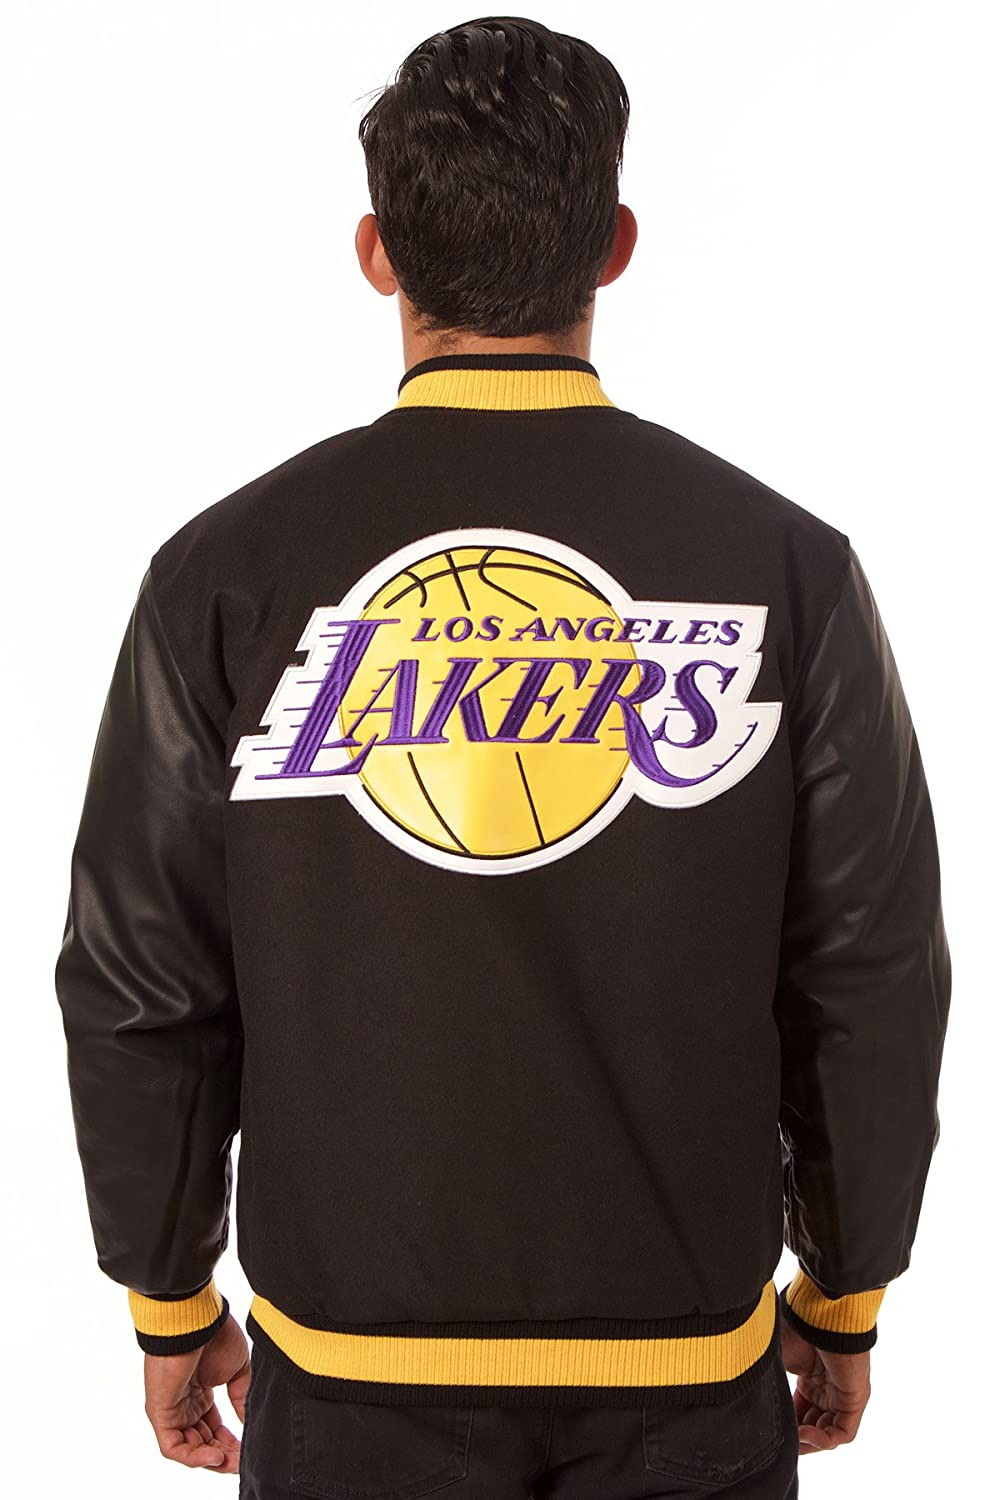 Los Angeles Lakers Reversible chaqueta de lana/nailon, Negro: Amazon.es: Deportes y aire libre